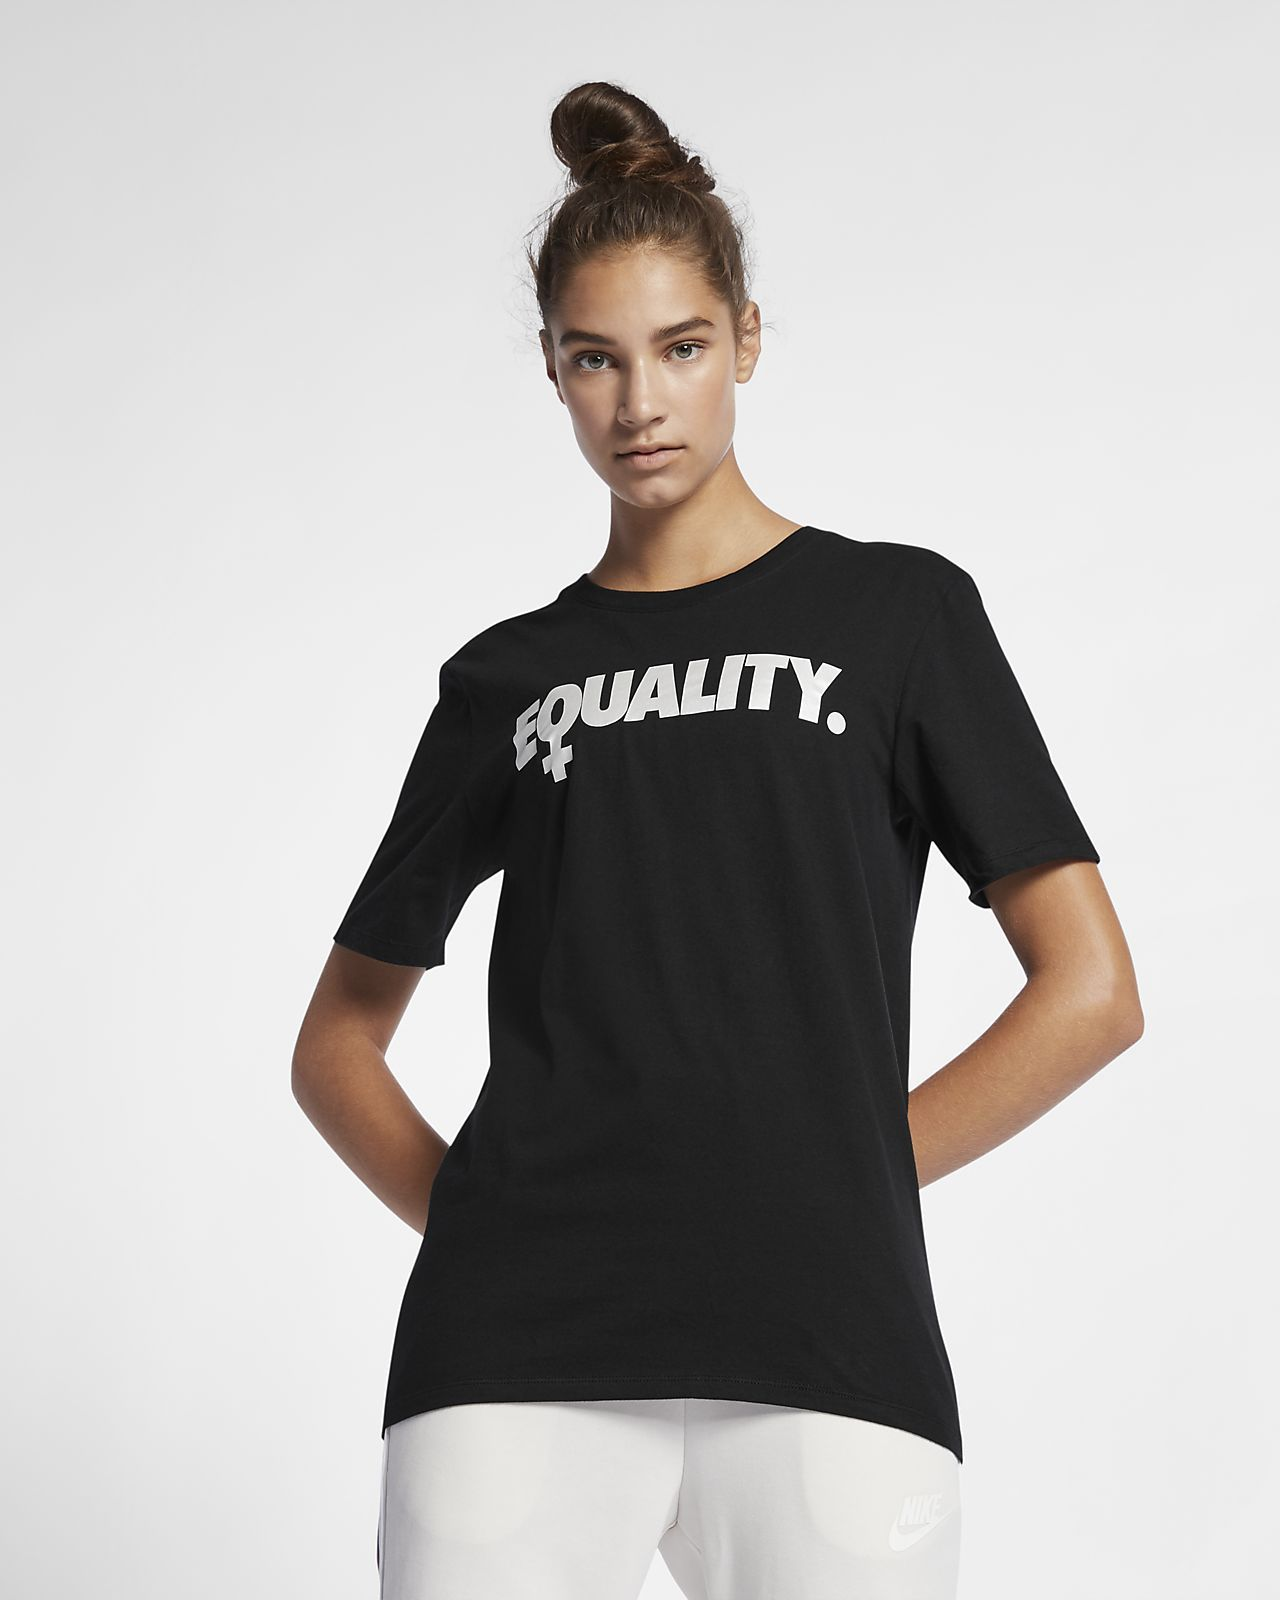 sneakers for cheap ae0a7 c1a17 Nike International Women s Day EQUALITY Unisex T-Shirt